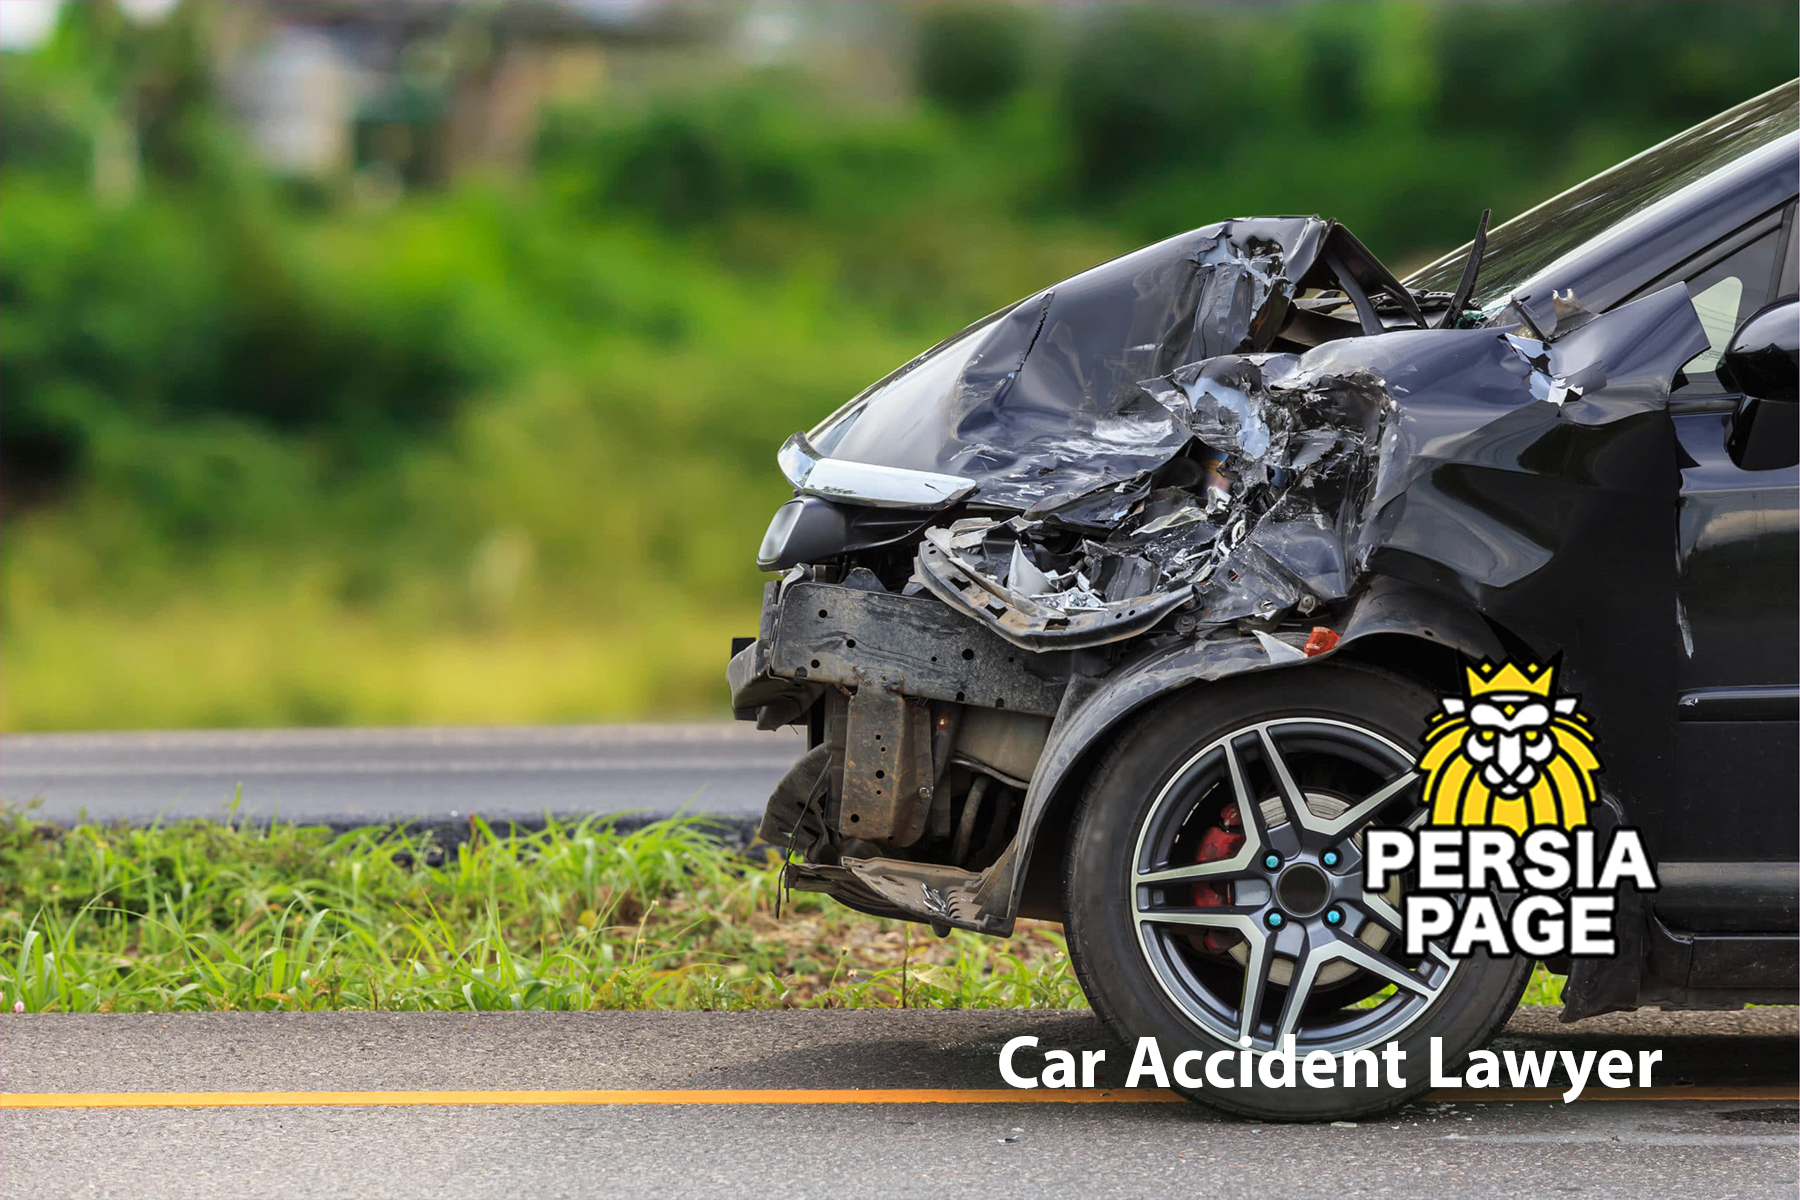 5 Things to Search for When Choosing a Car Accident Lawyer-B